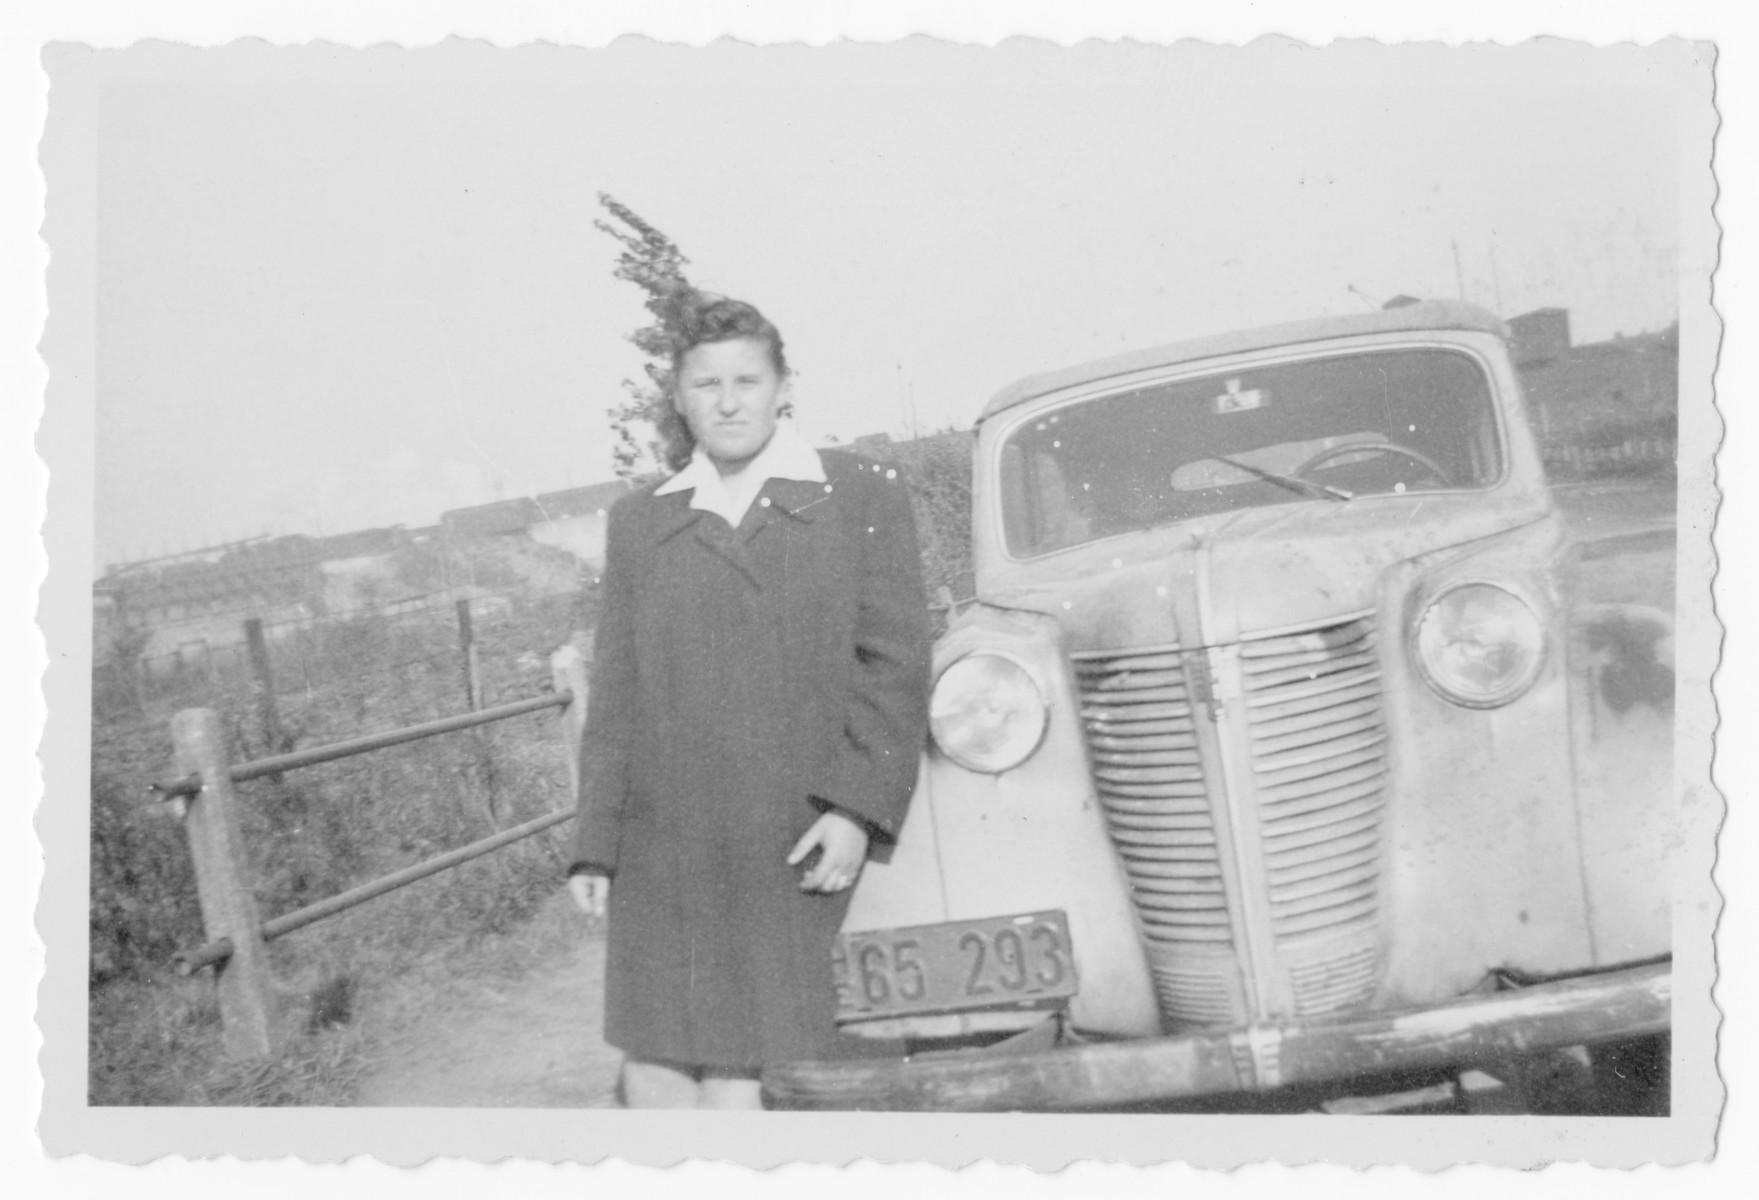 Bella Simon poses next to an automobile [possibly in postwar Romania.]